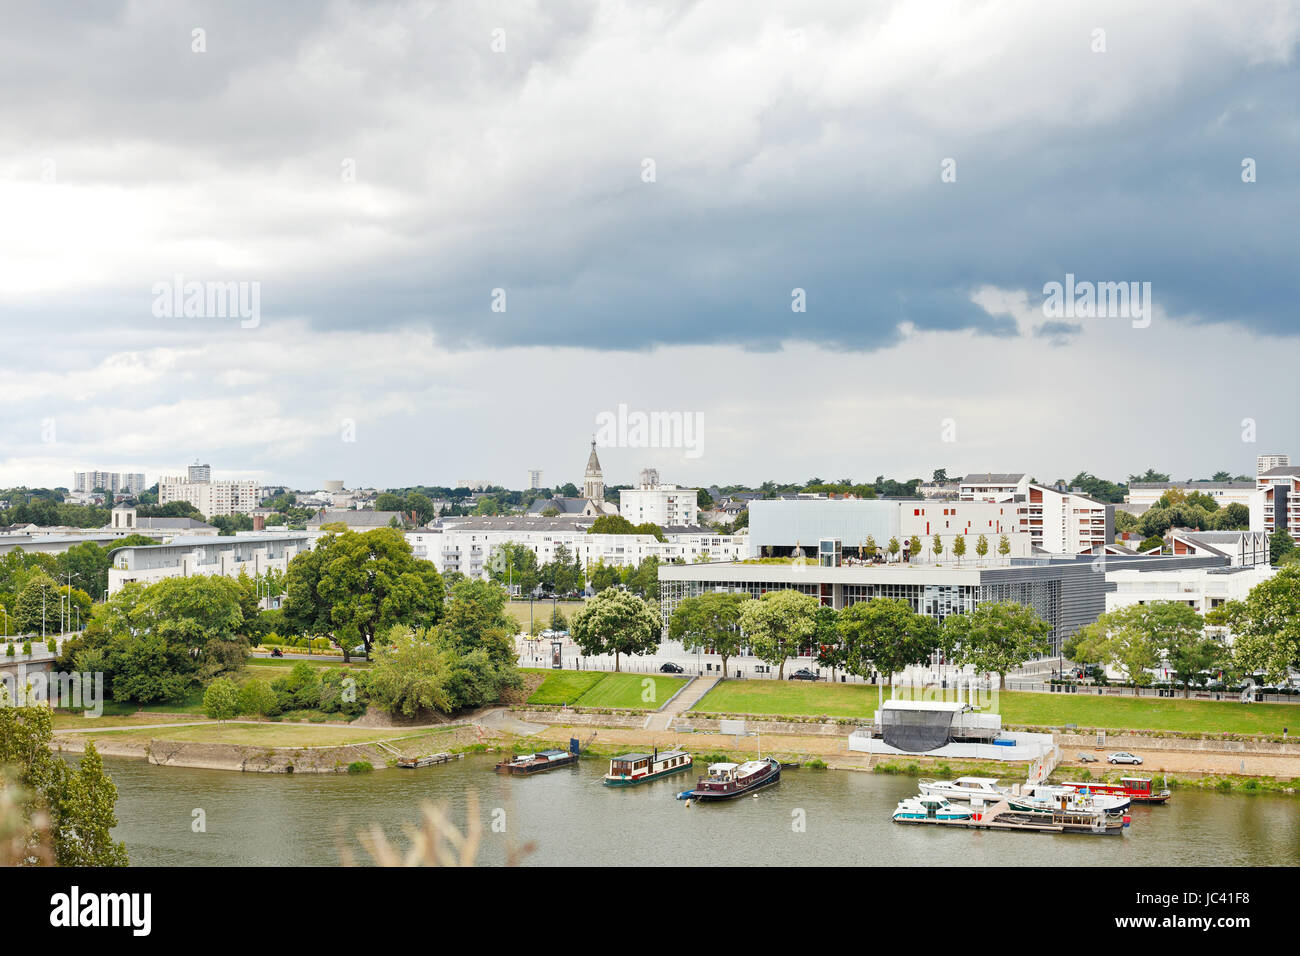 view of urban port on La Maine river in Angers city, France - Stock Image